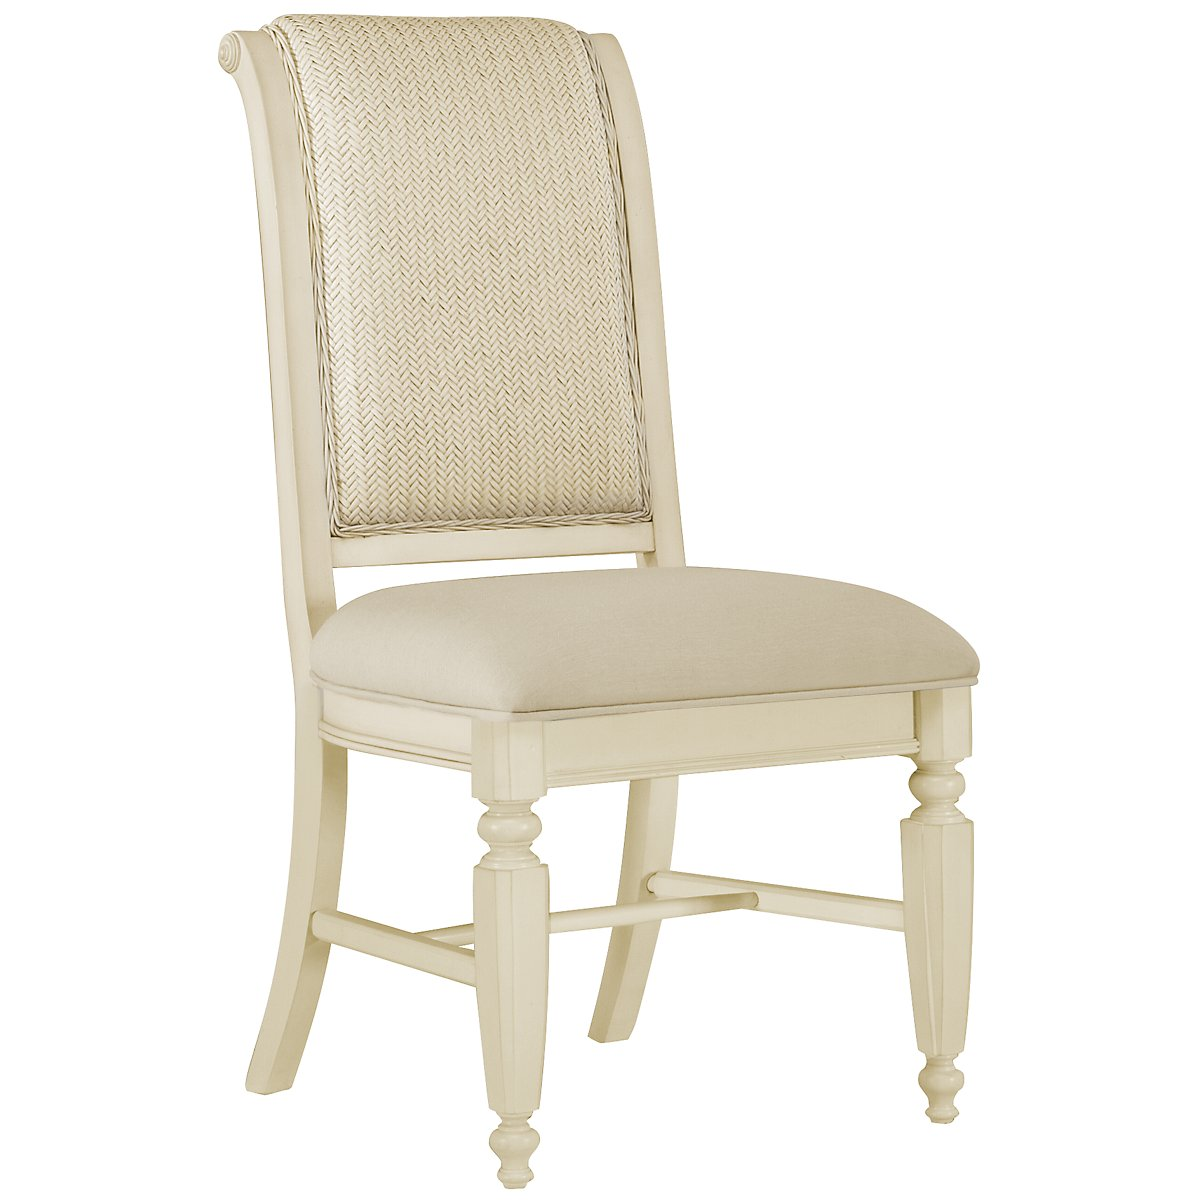 Claire White Woven Side Chair